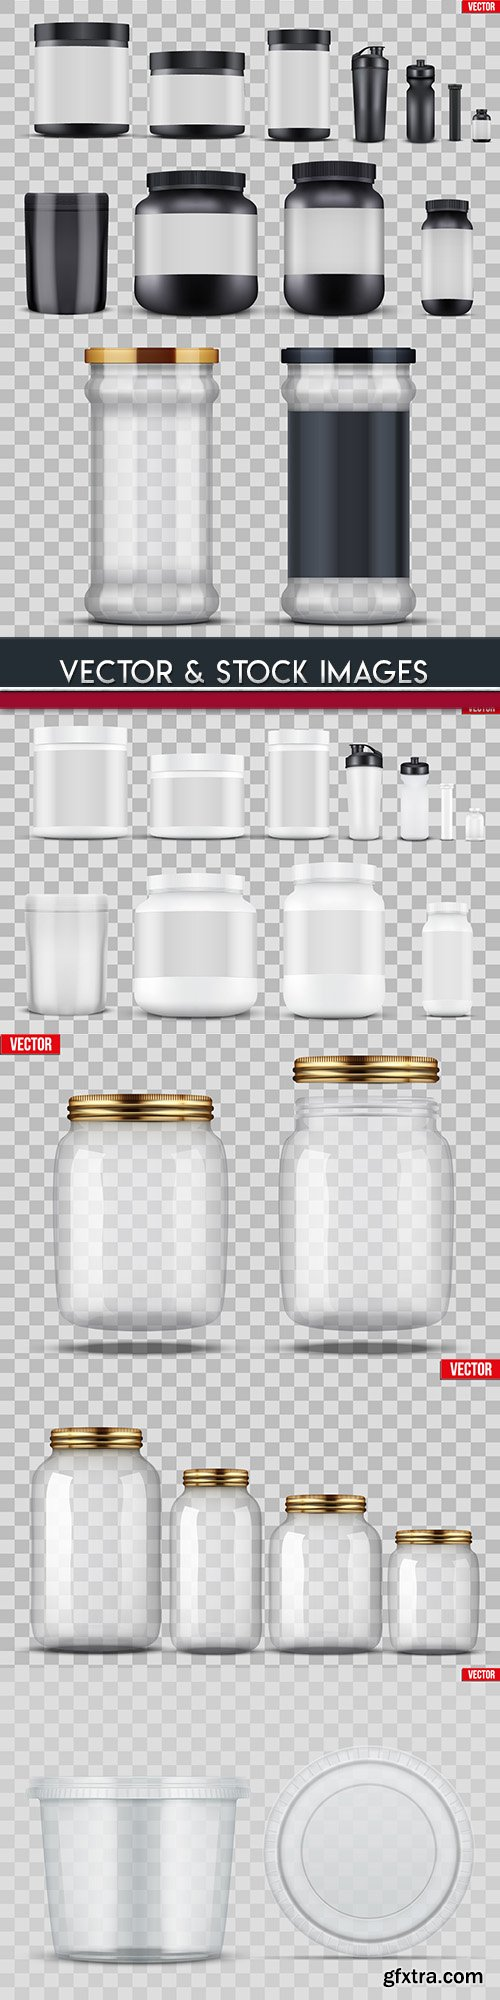 Plastic and glass cans with cover 3d template